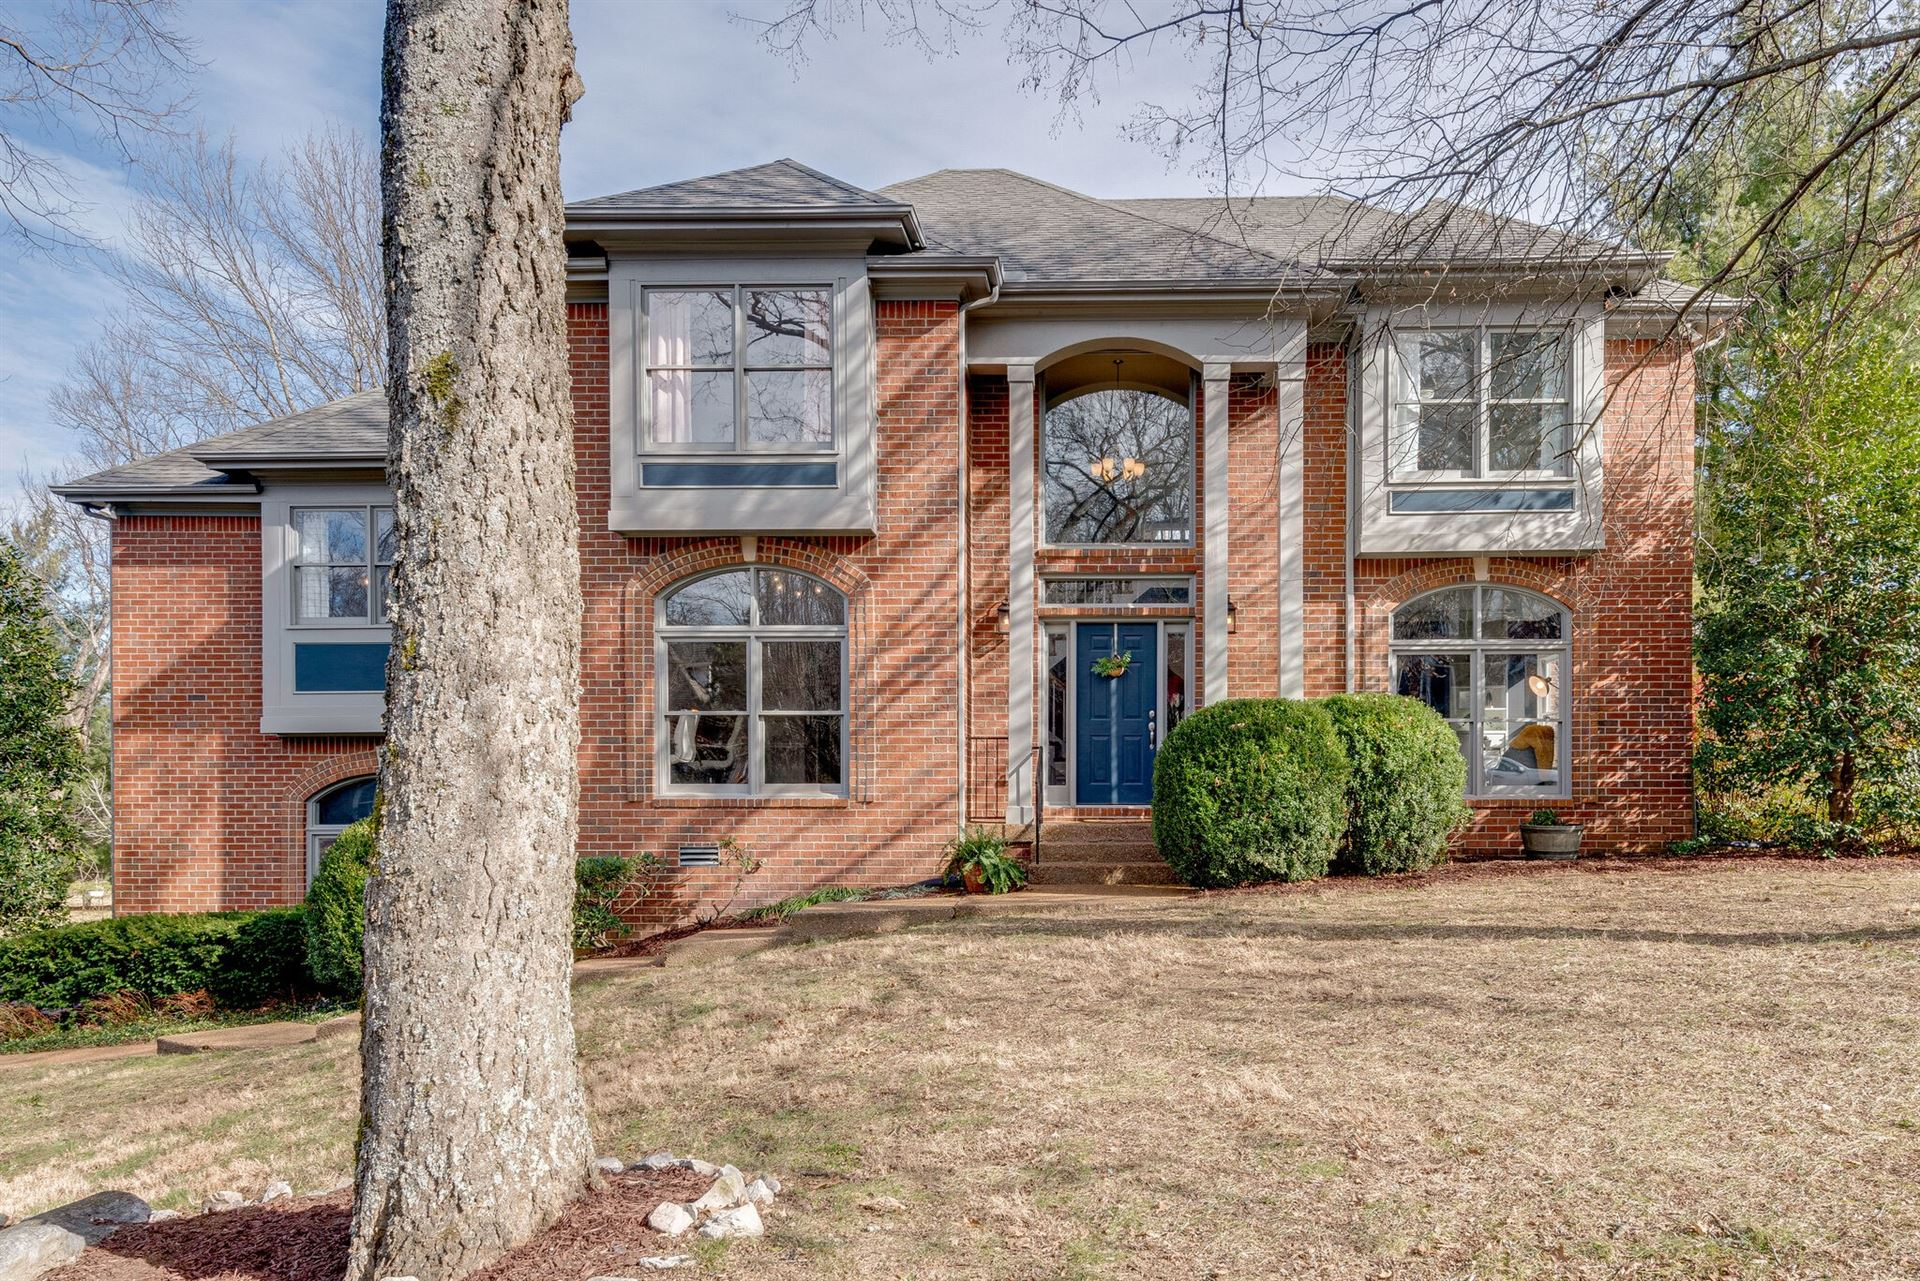 Photo of 9457 Foothills Dr, Brentwood, TN 37027 (MLS # 2220884)